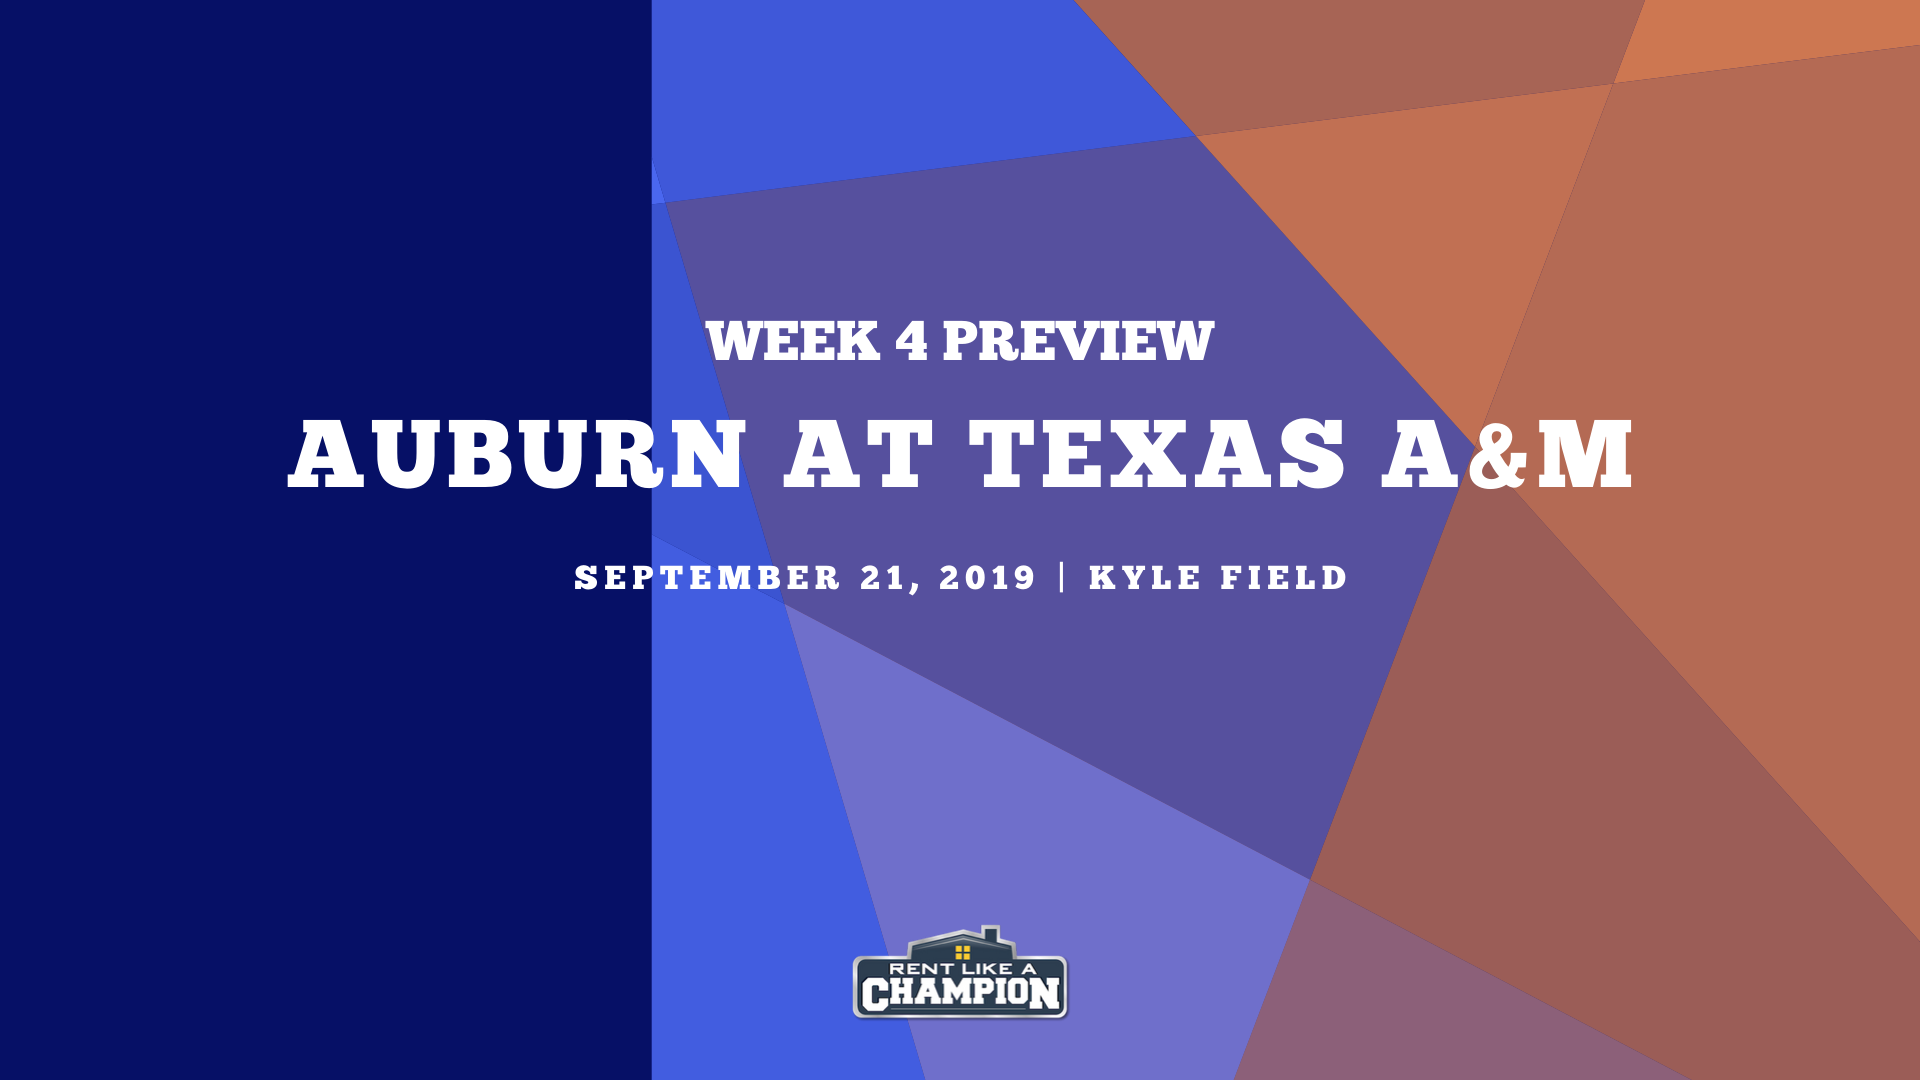 Auburn at Texas A&M: Preview, keys to the game, and predictions